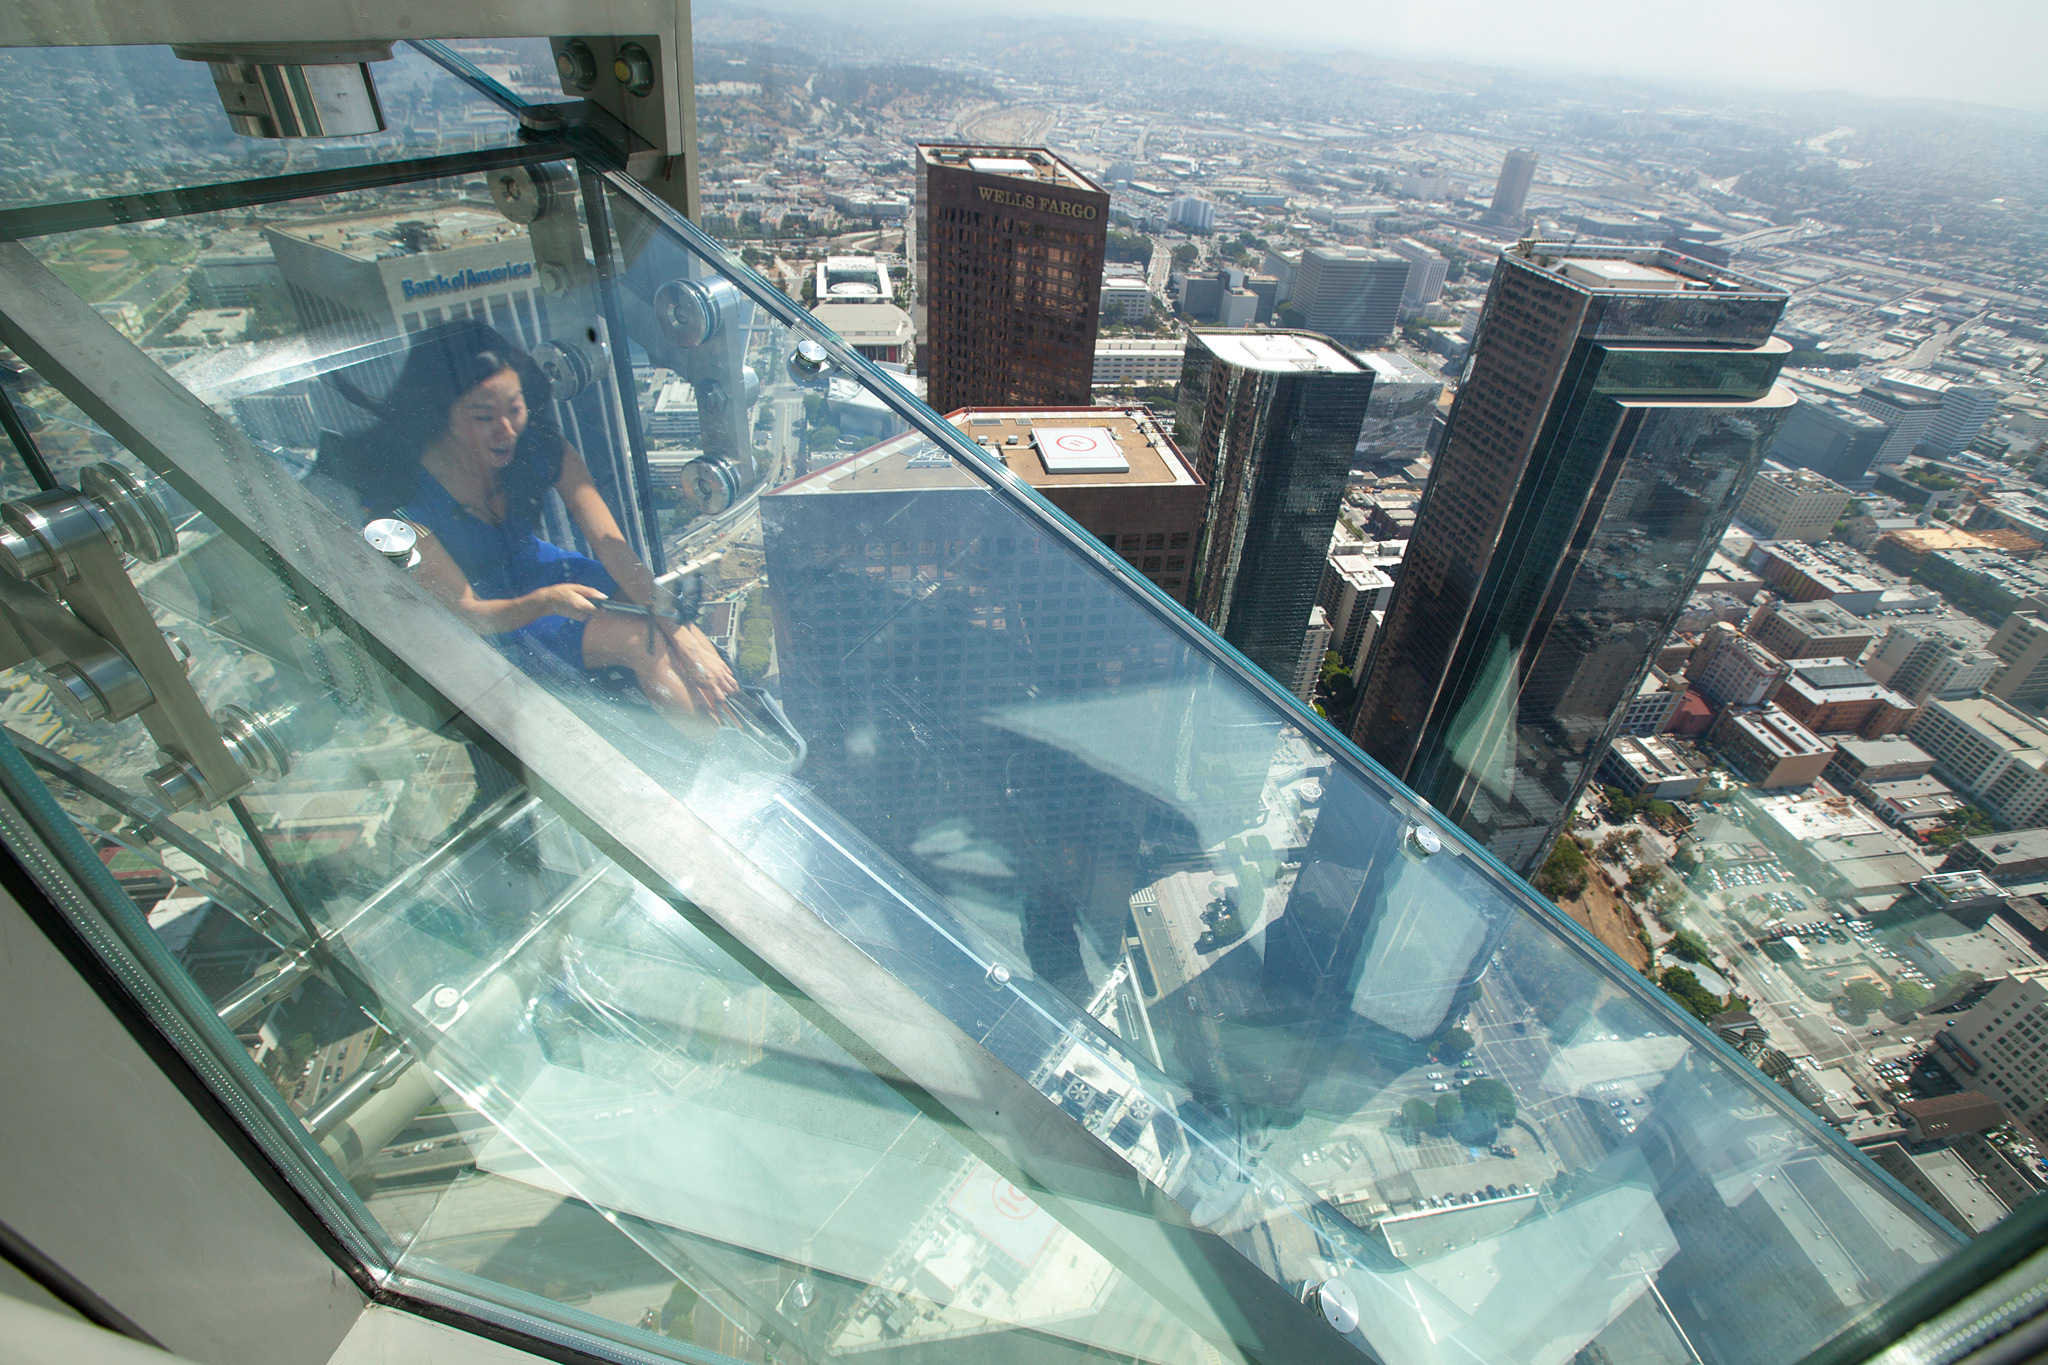 Skyspace LA and Skyslide